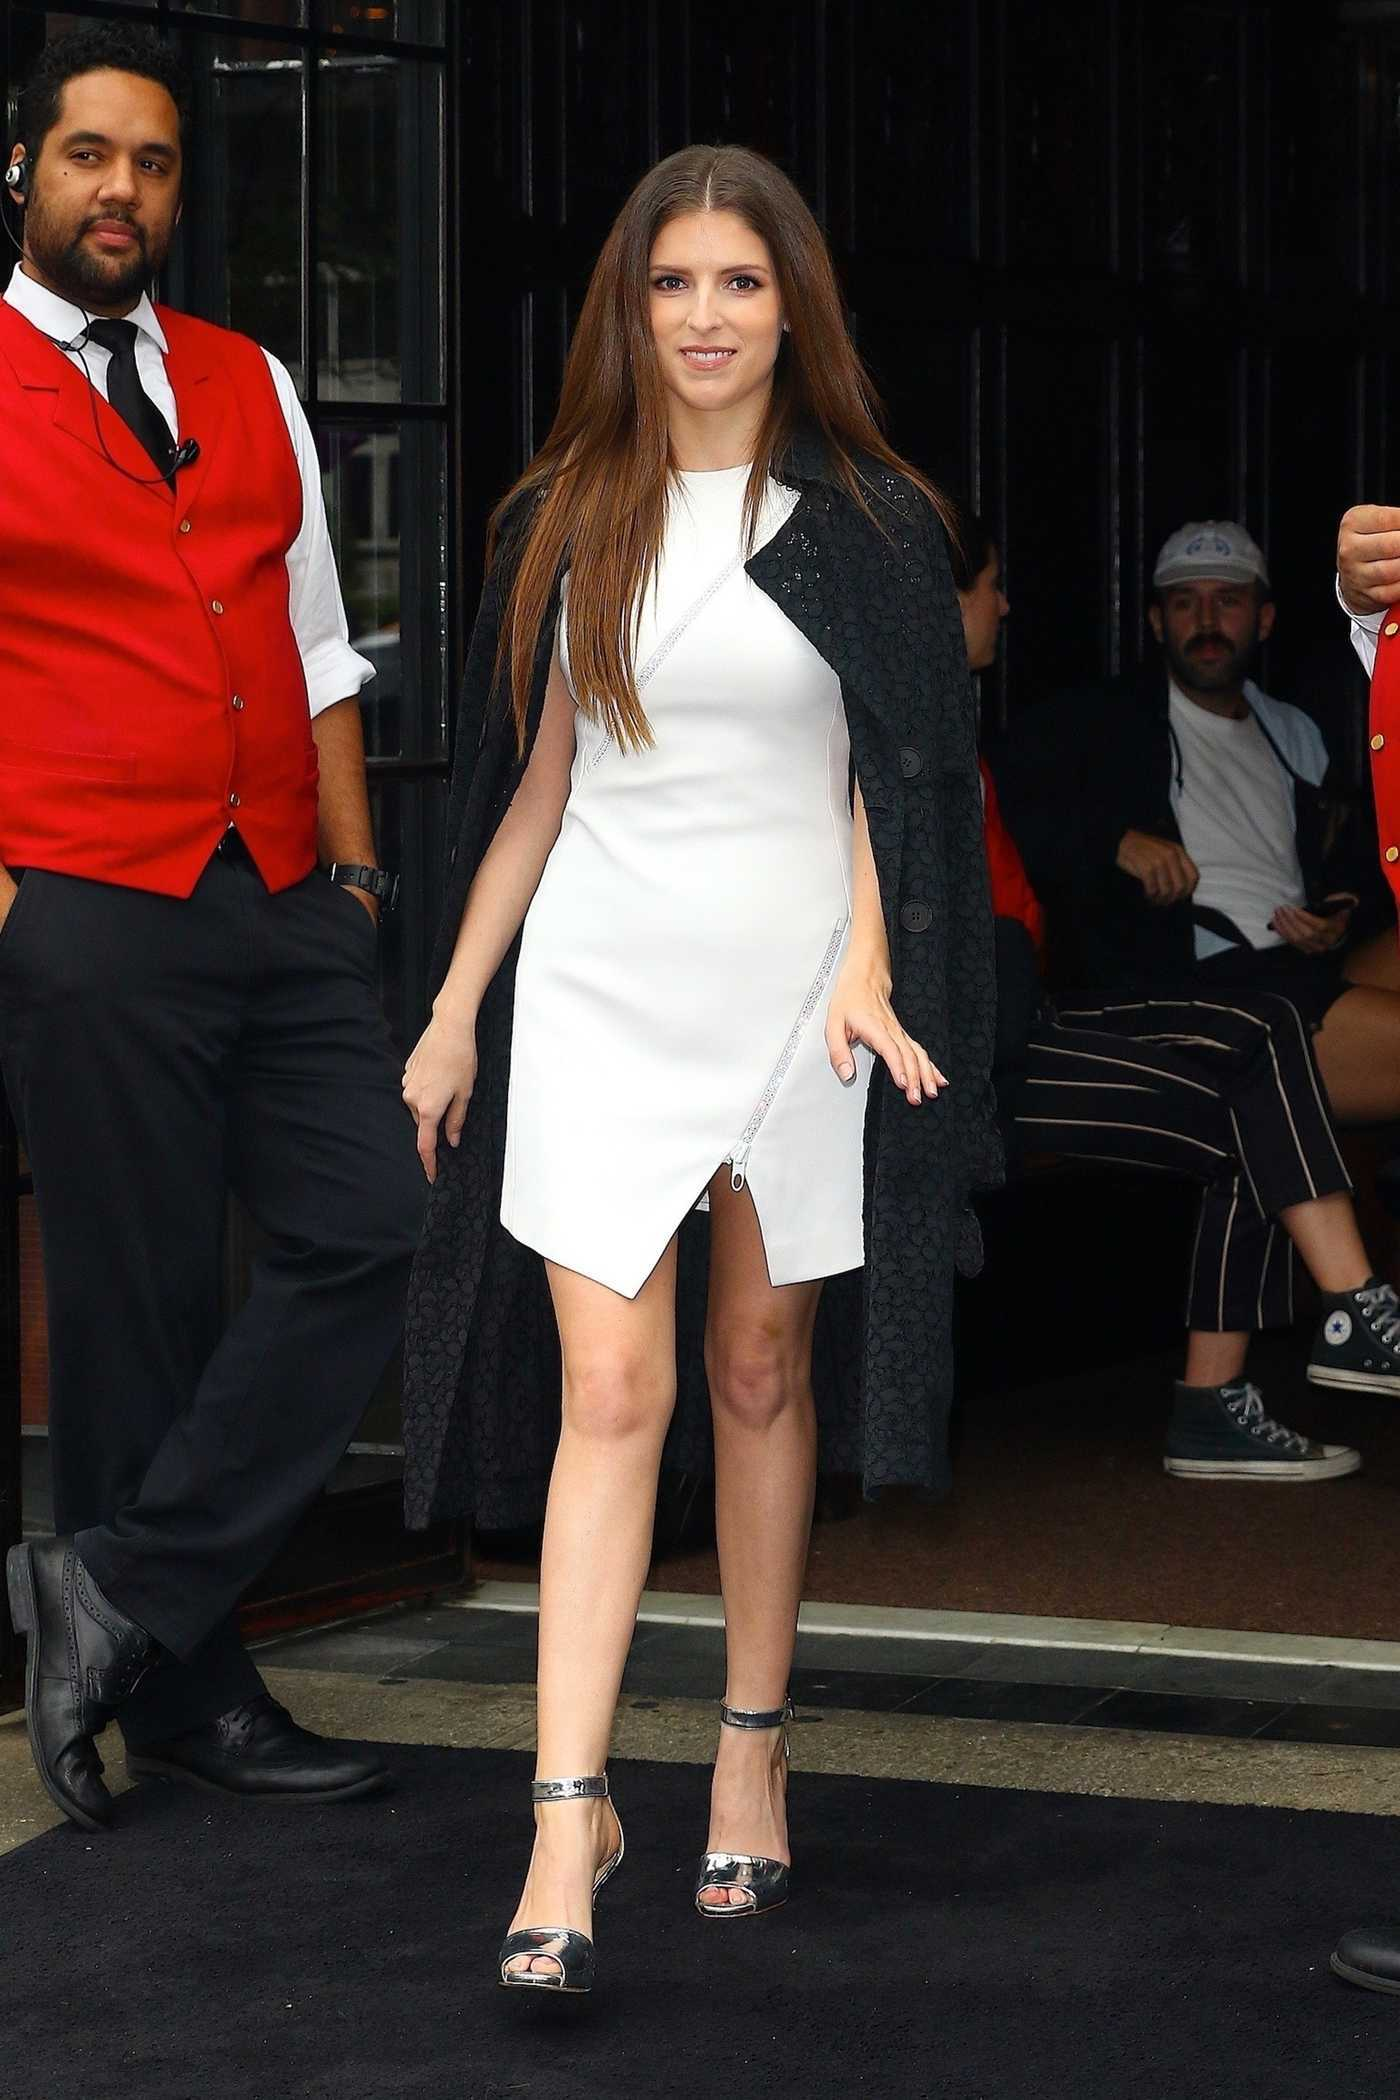 Anna Kendrick in a White Minidress Was Seen Out in New York 09/10/2018